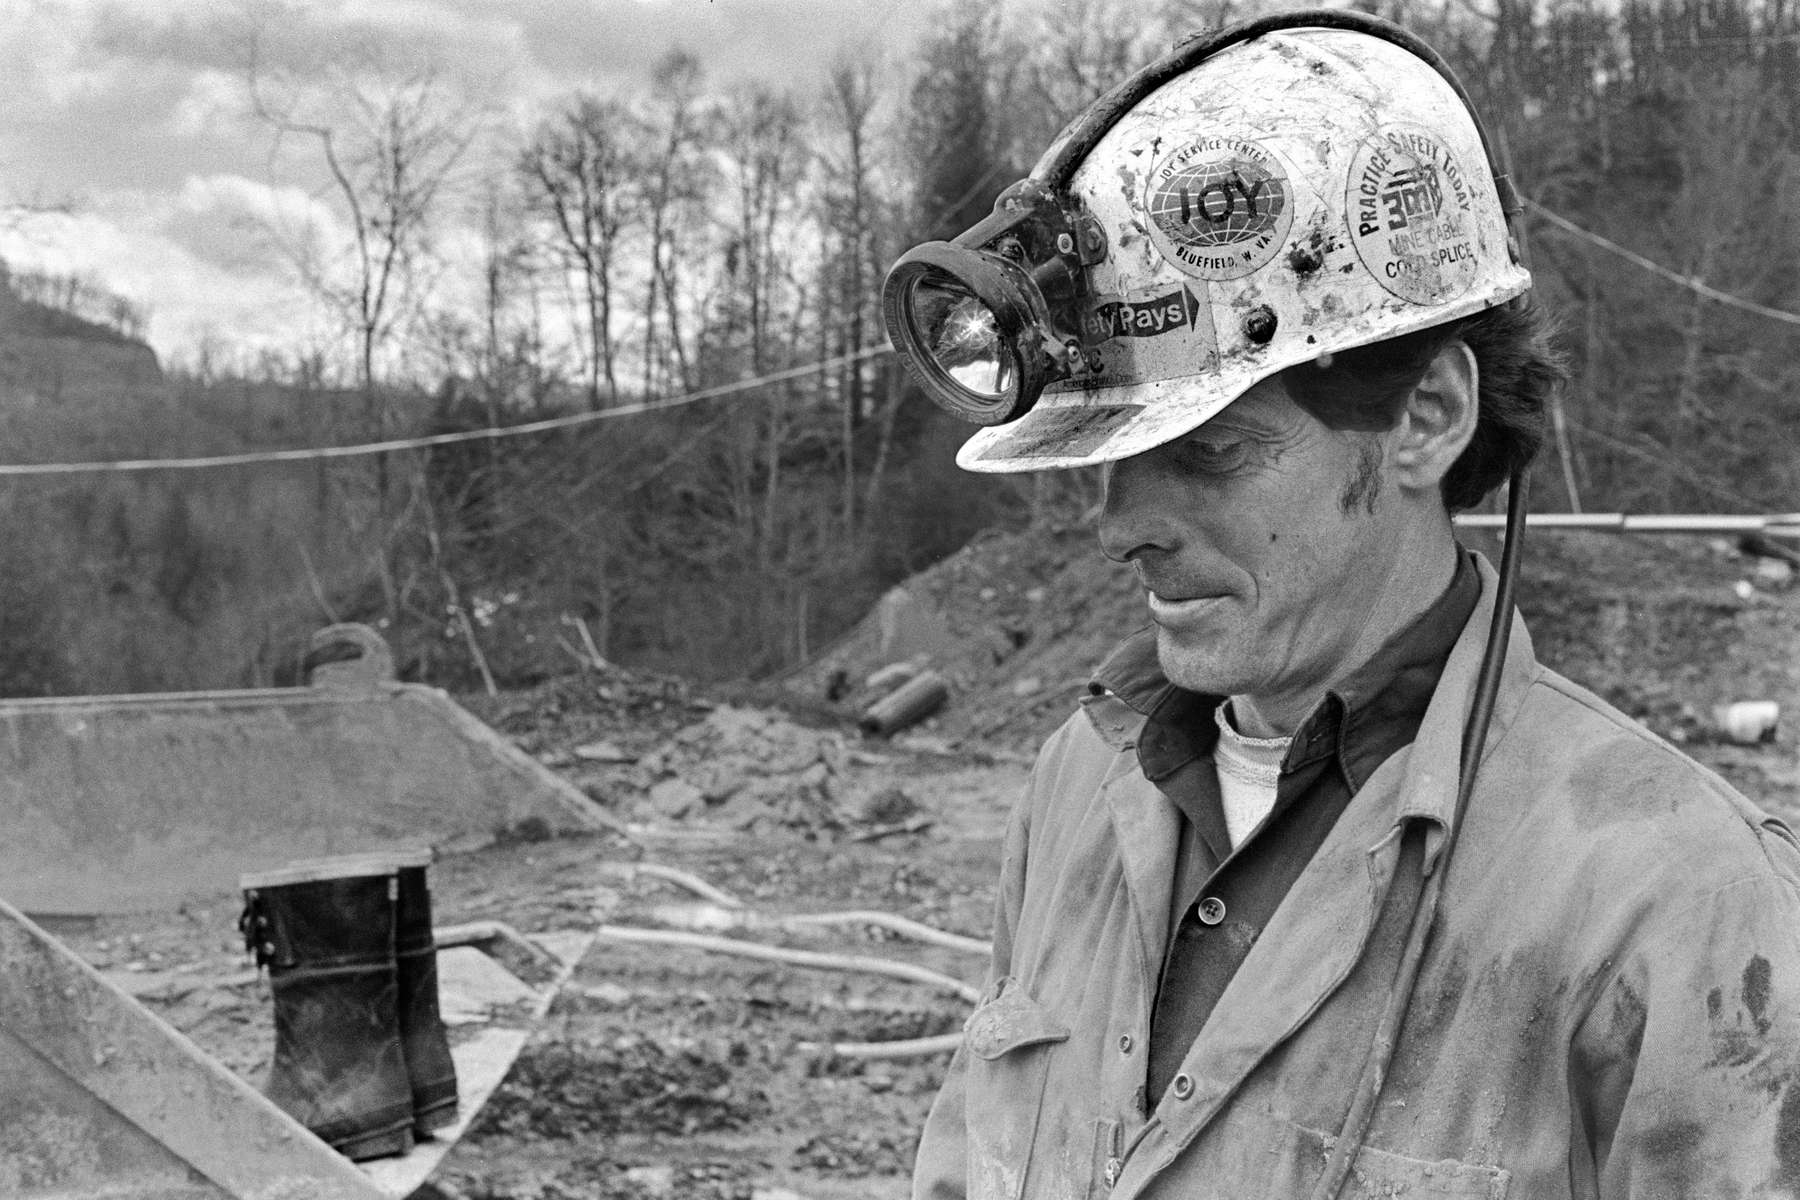 Morrell Mullins. day shift section foreman at Elkin Mine #6, Norton, VA, 1979. Jon Chase photo